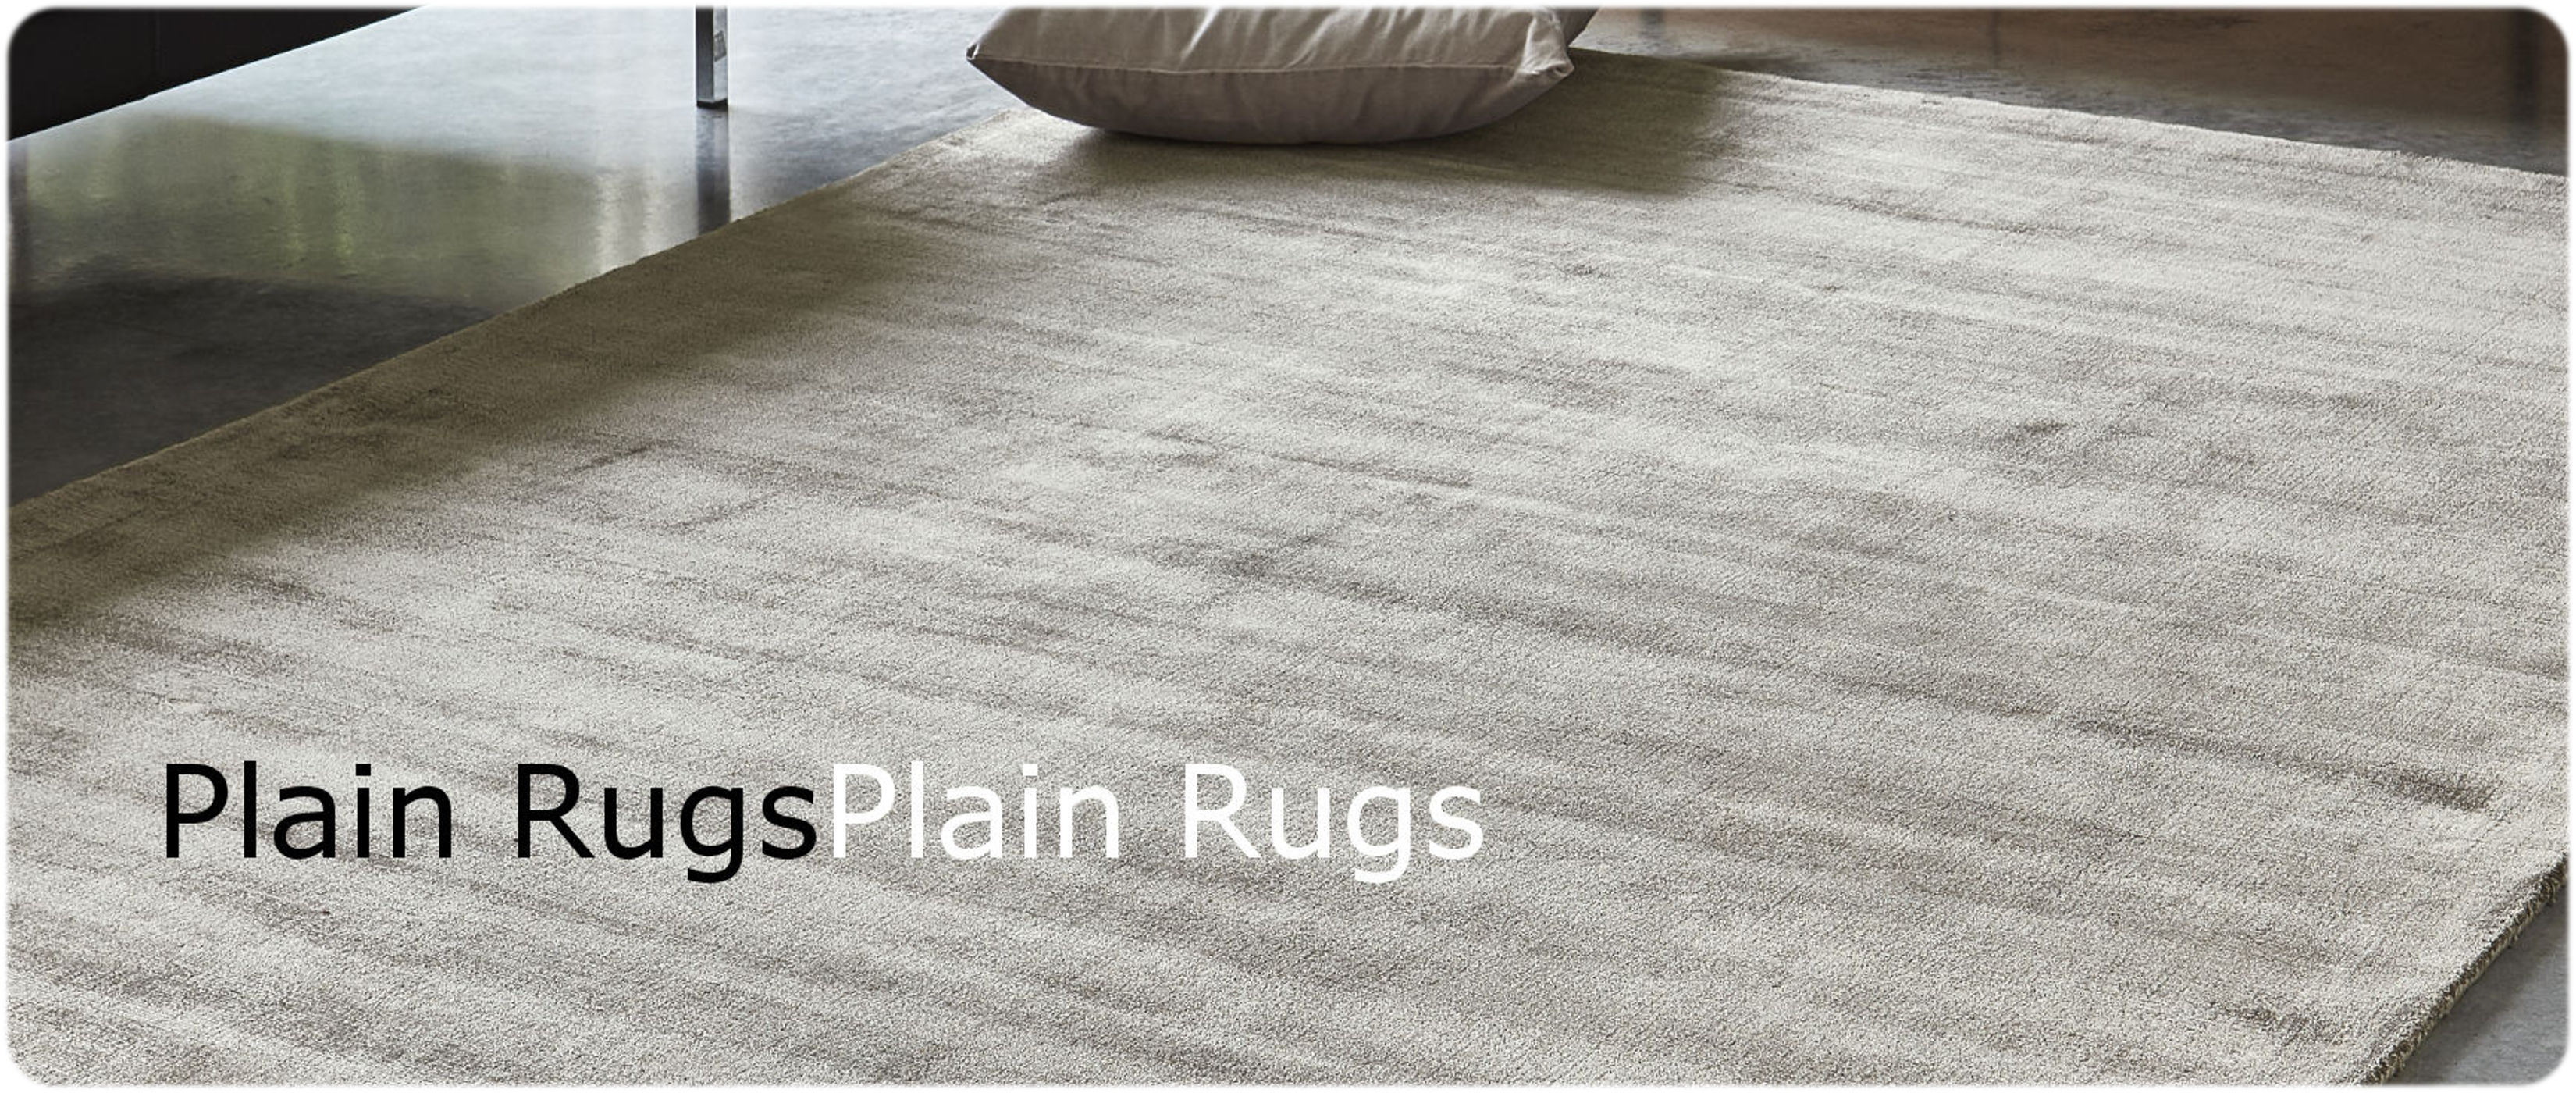 plain rugs logo